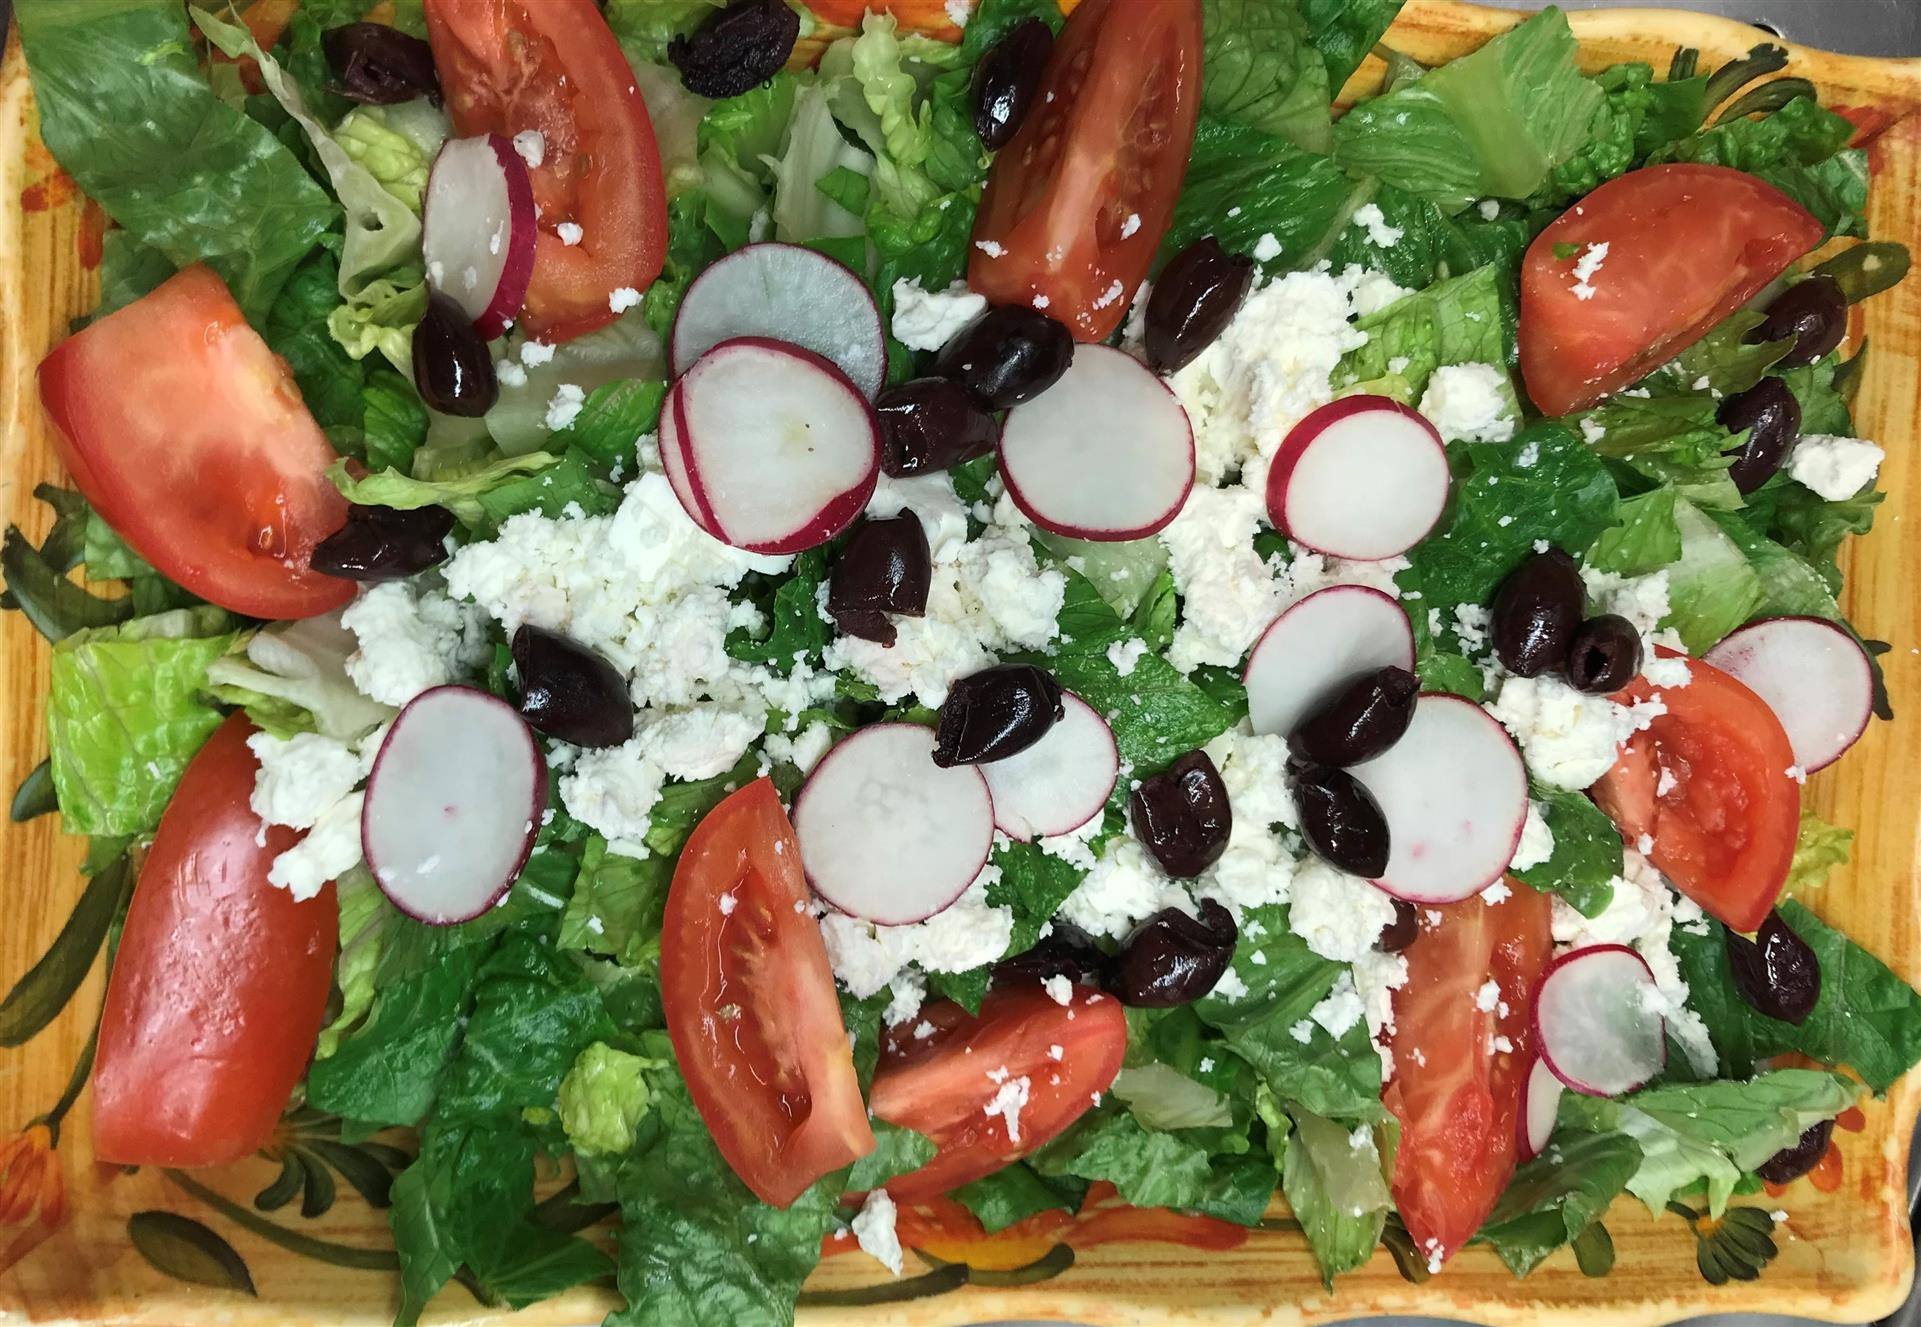 greek salad with feta, kalamata olives, tomatoes and radishes